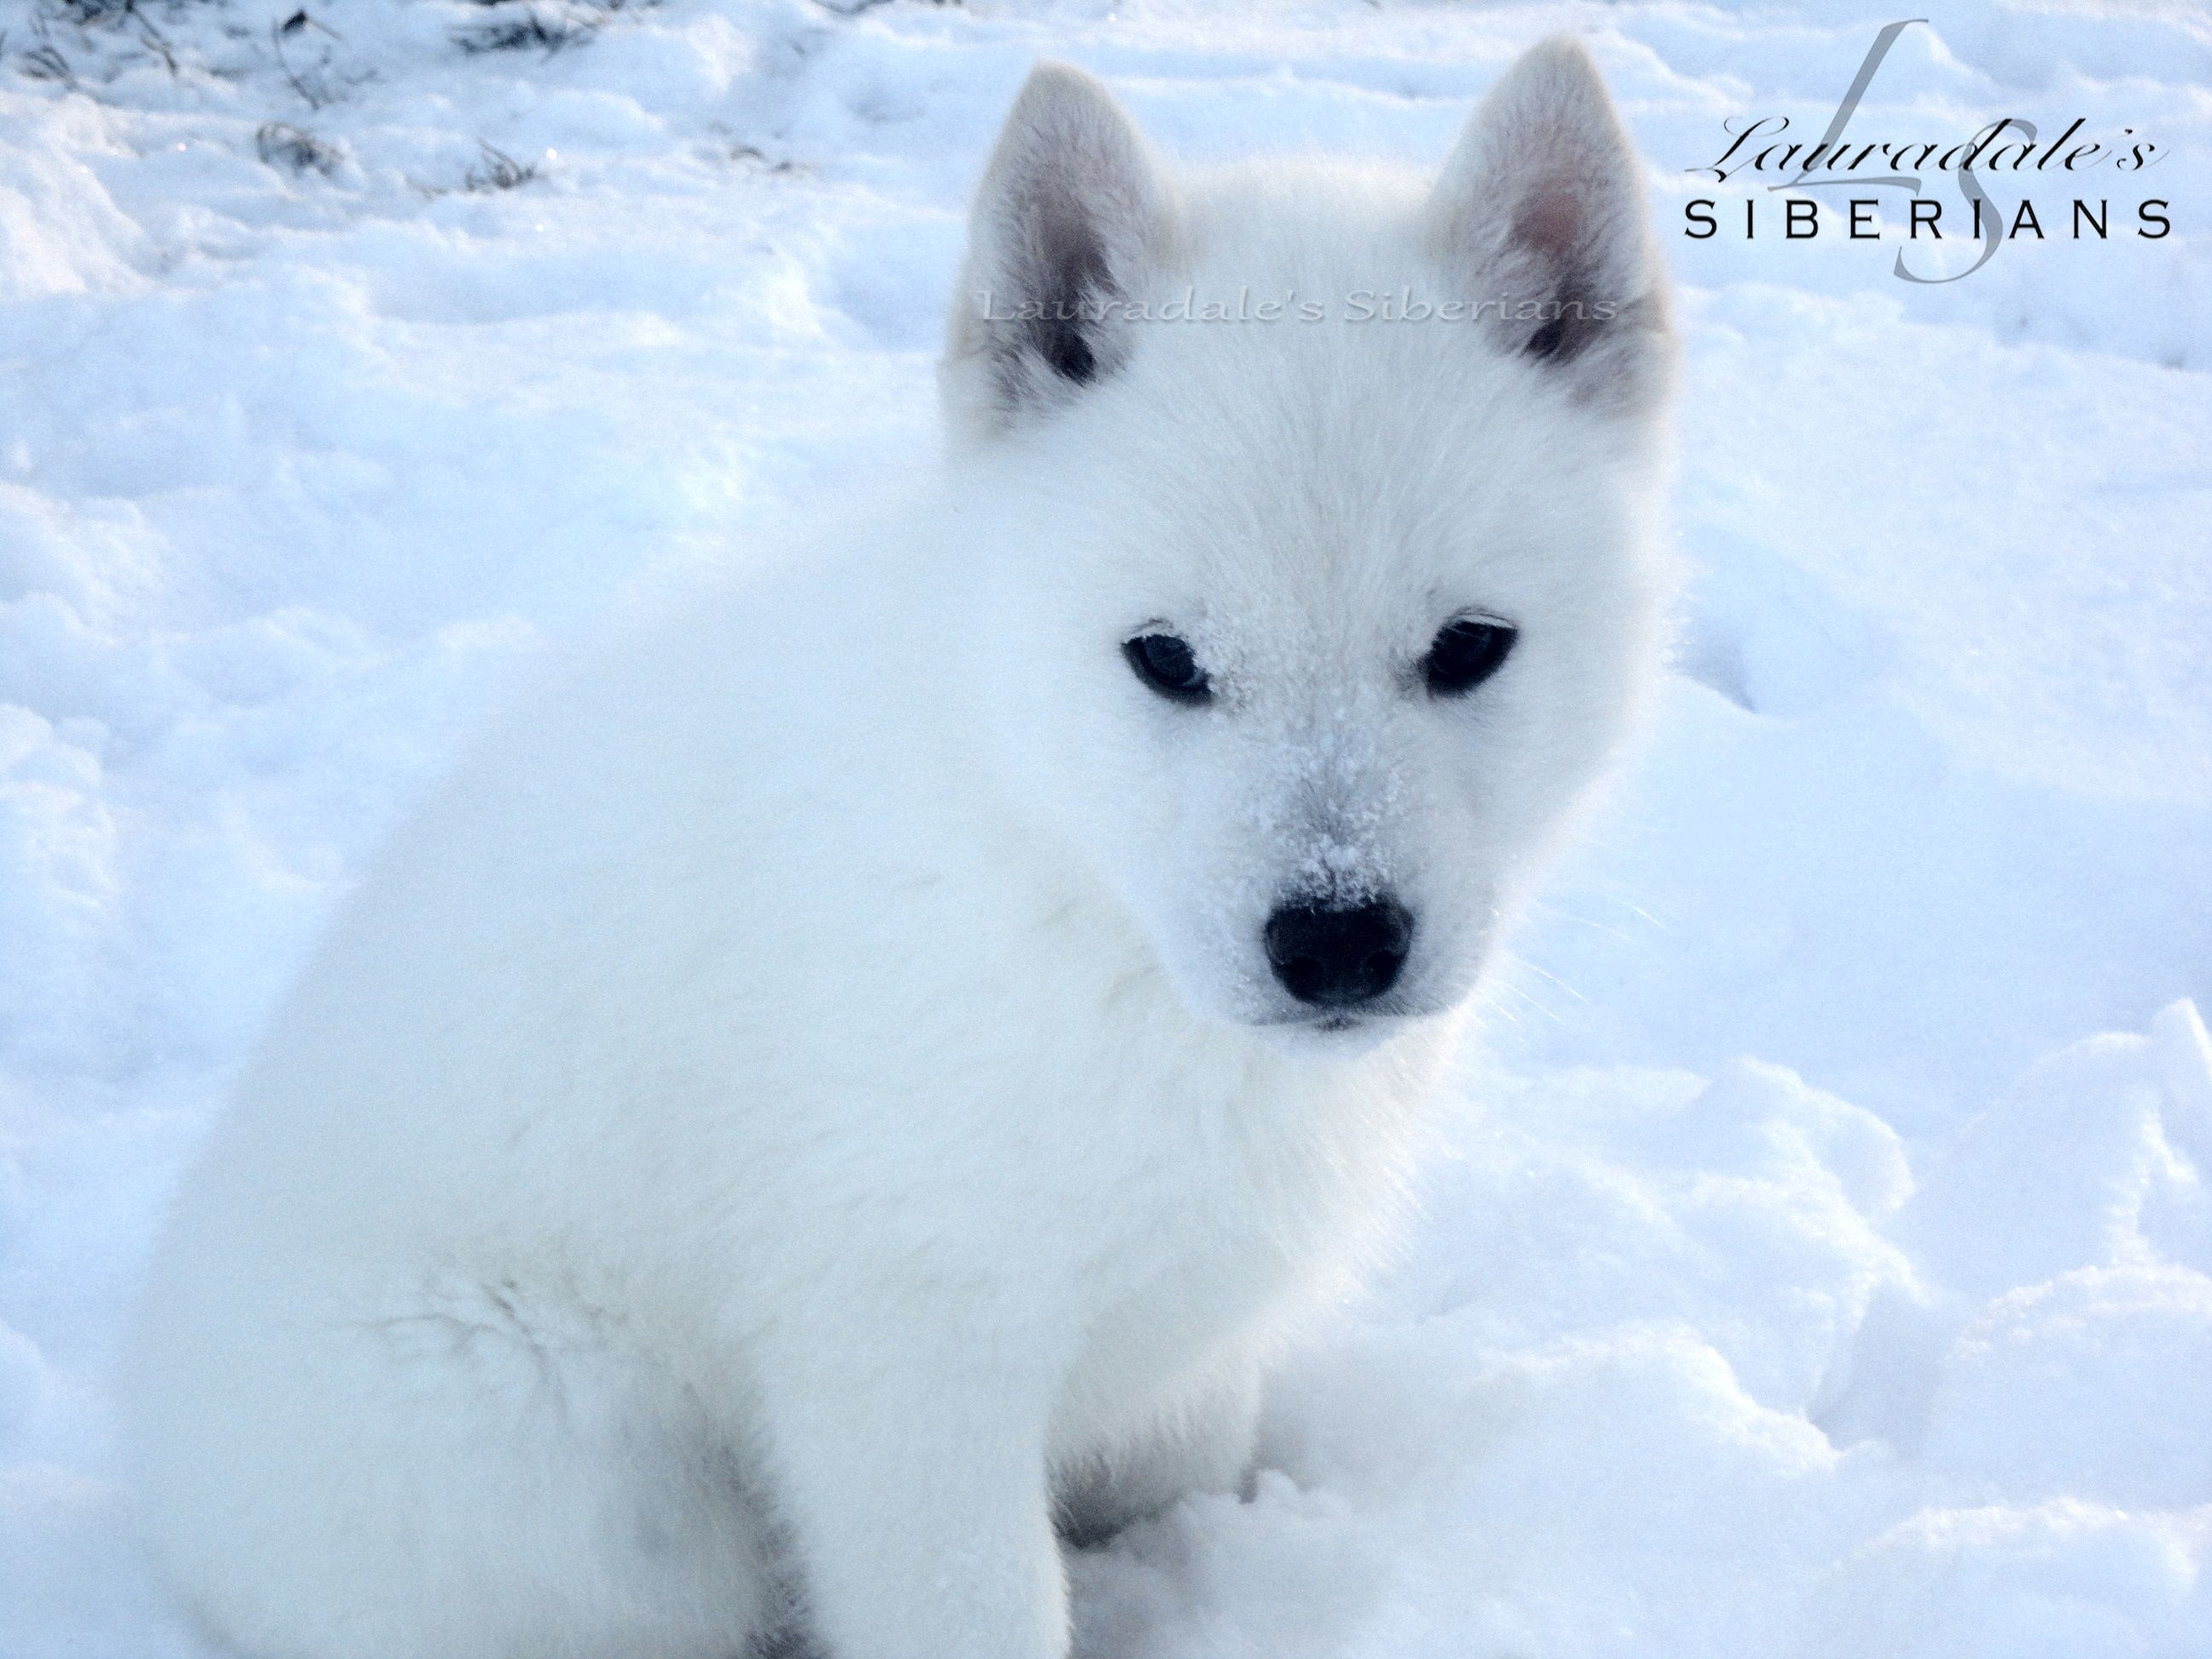 Siberian Husky Puppy Playing In The Snow Look How White He Is